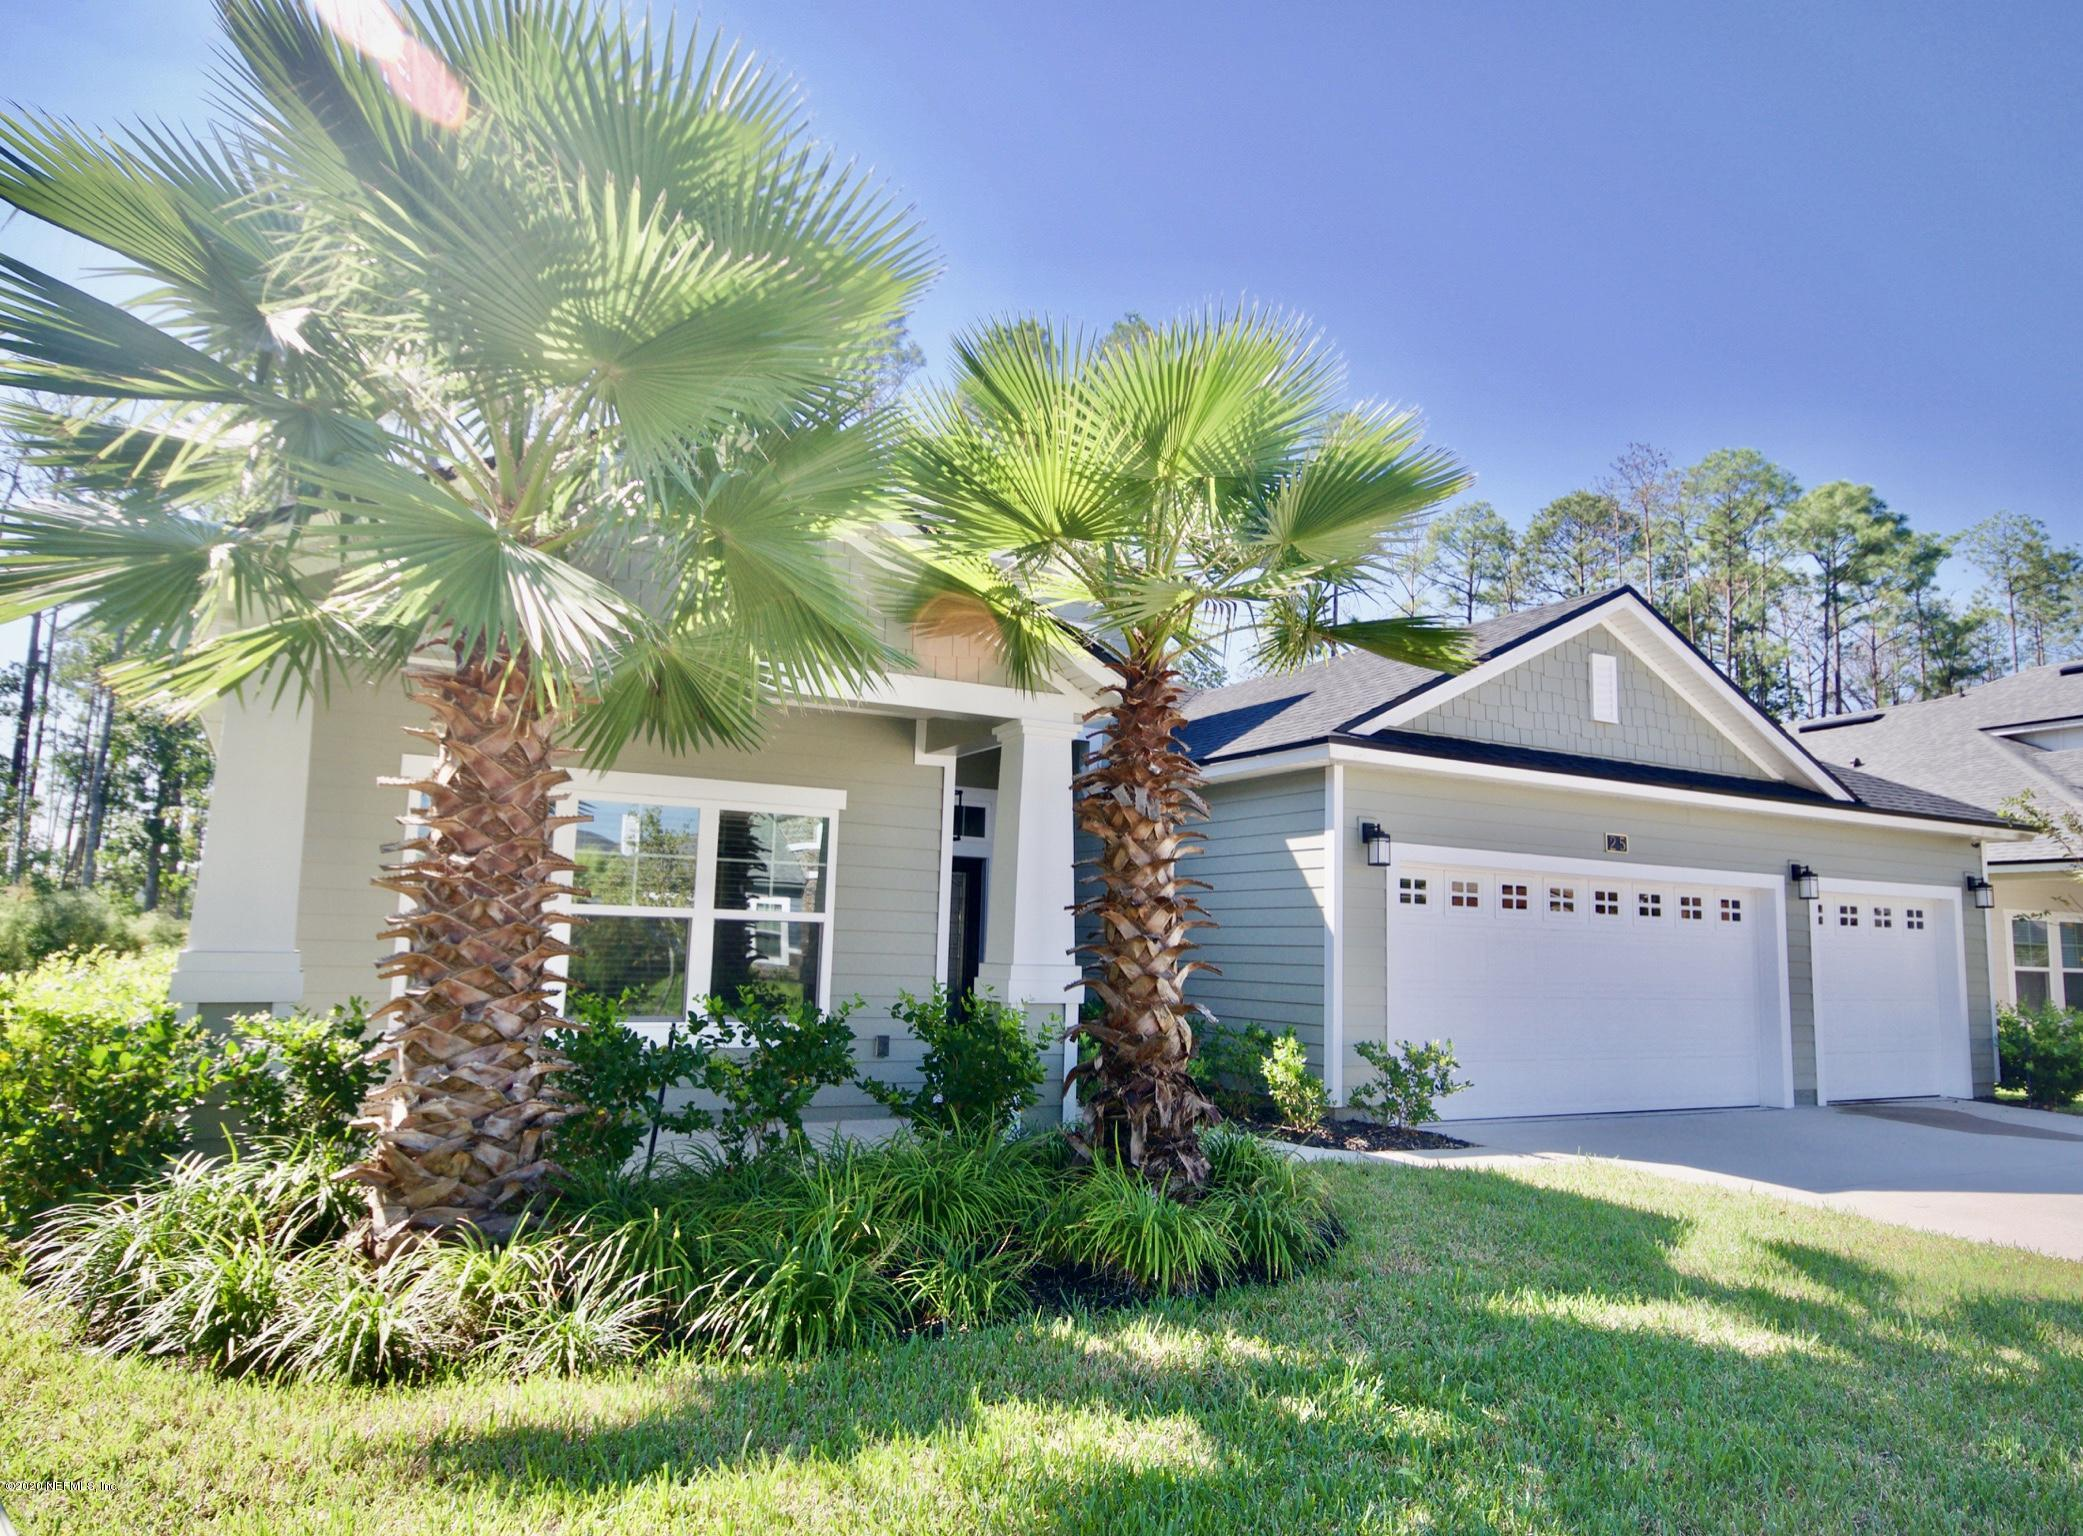 25 CARNAUBA, PONTE VEDRA, FLORIDA 32081, 3 Bedrooms Bedrooms, ,2 BathroomsBathrooms,Residential,For sale,CARNAUBA,1044245